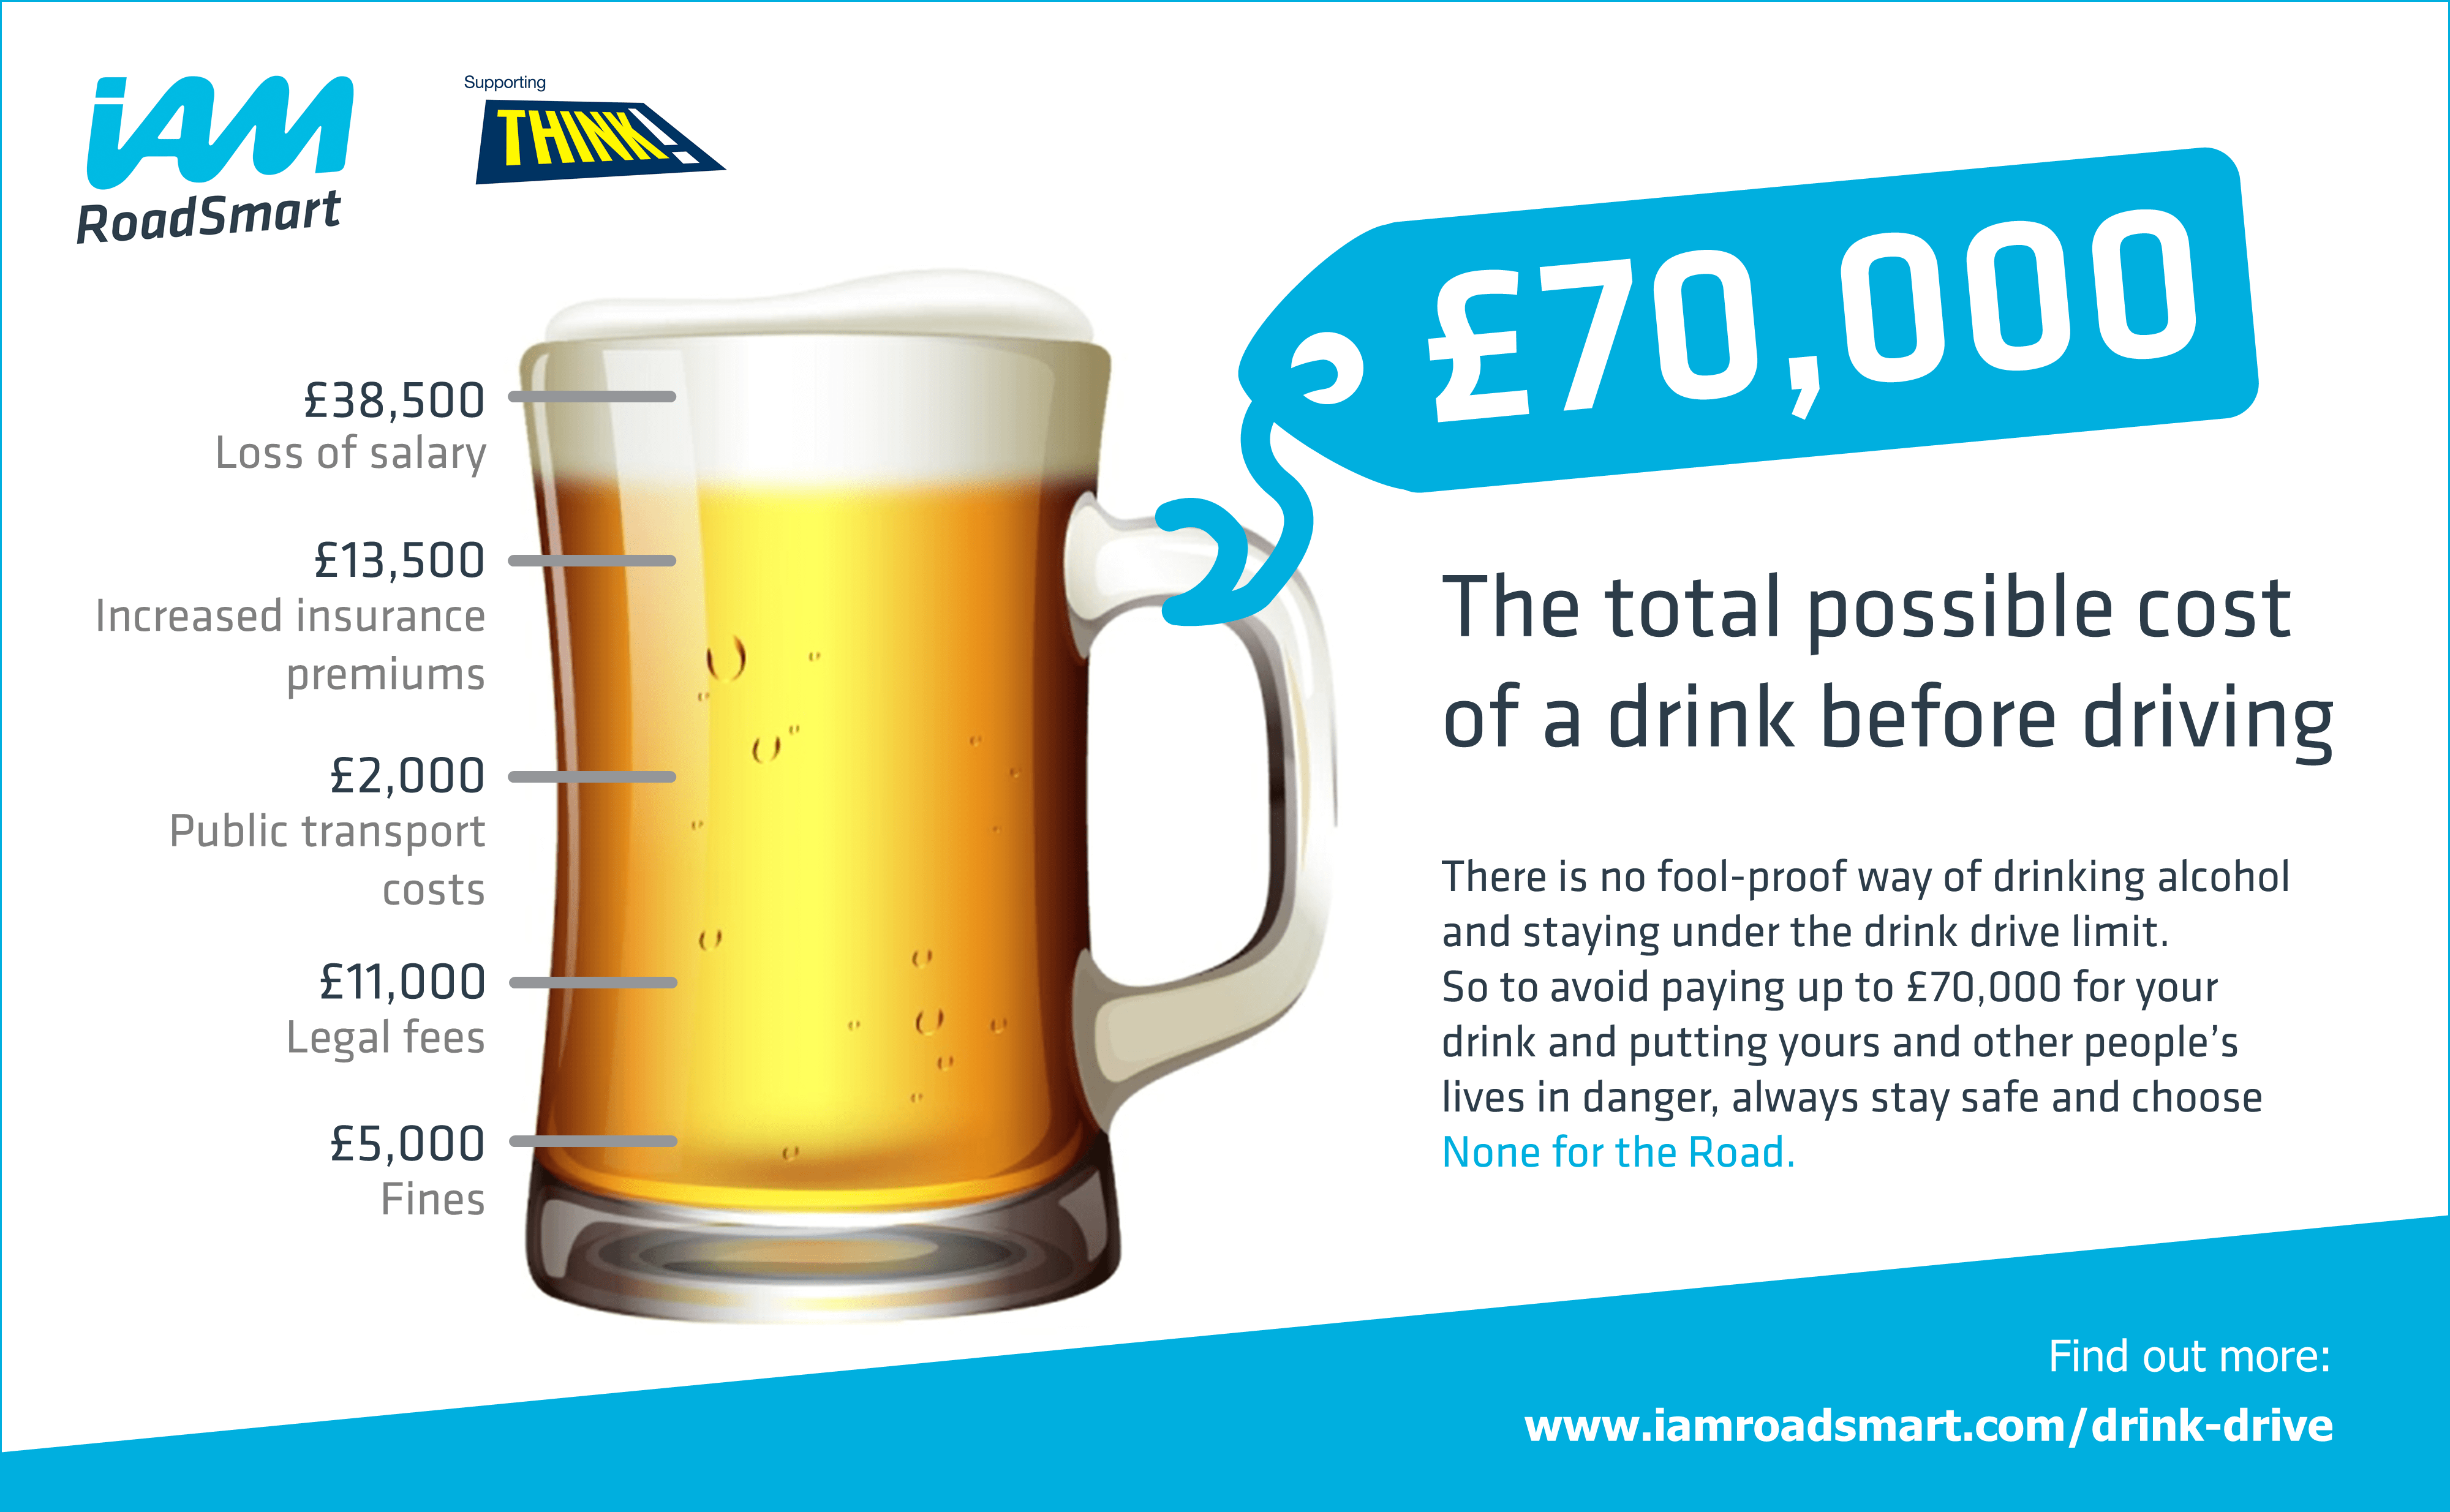 Watch out for the £70,000 drink this Christmas